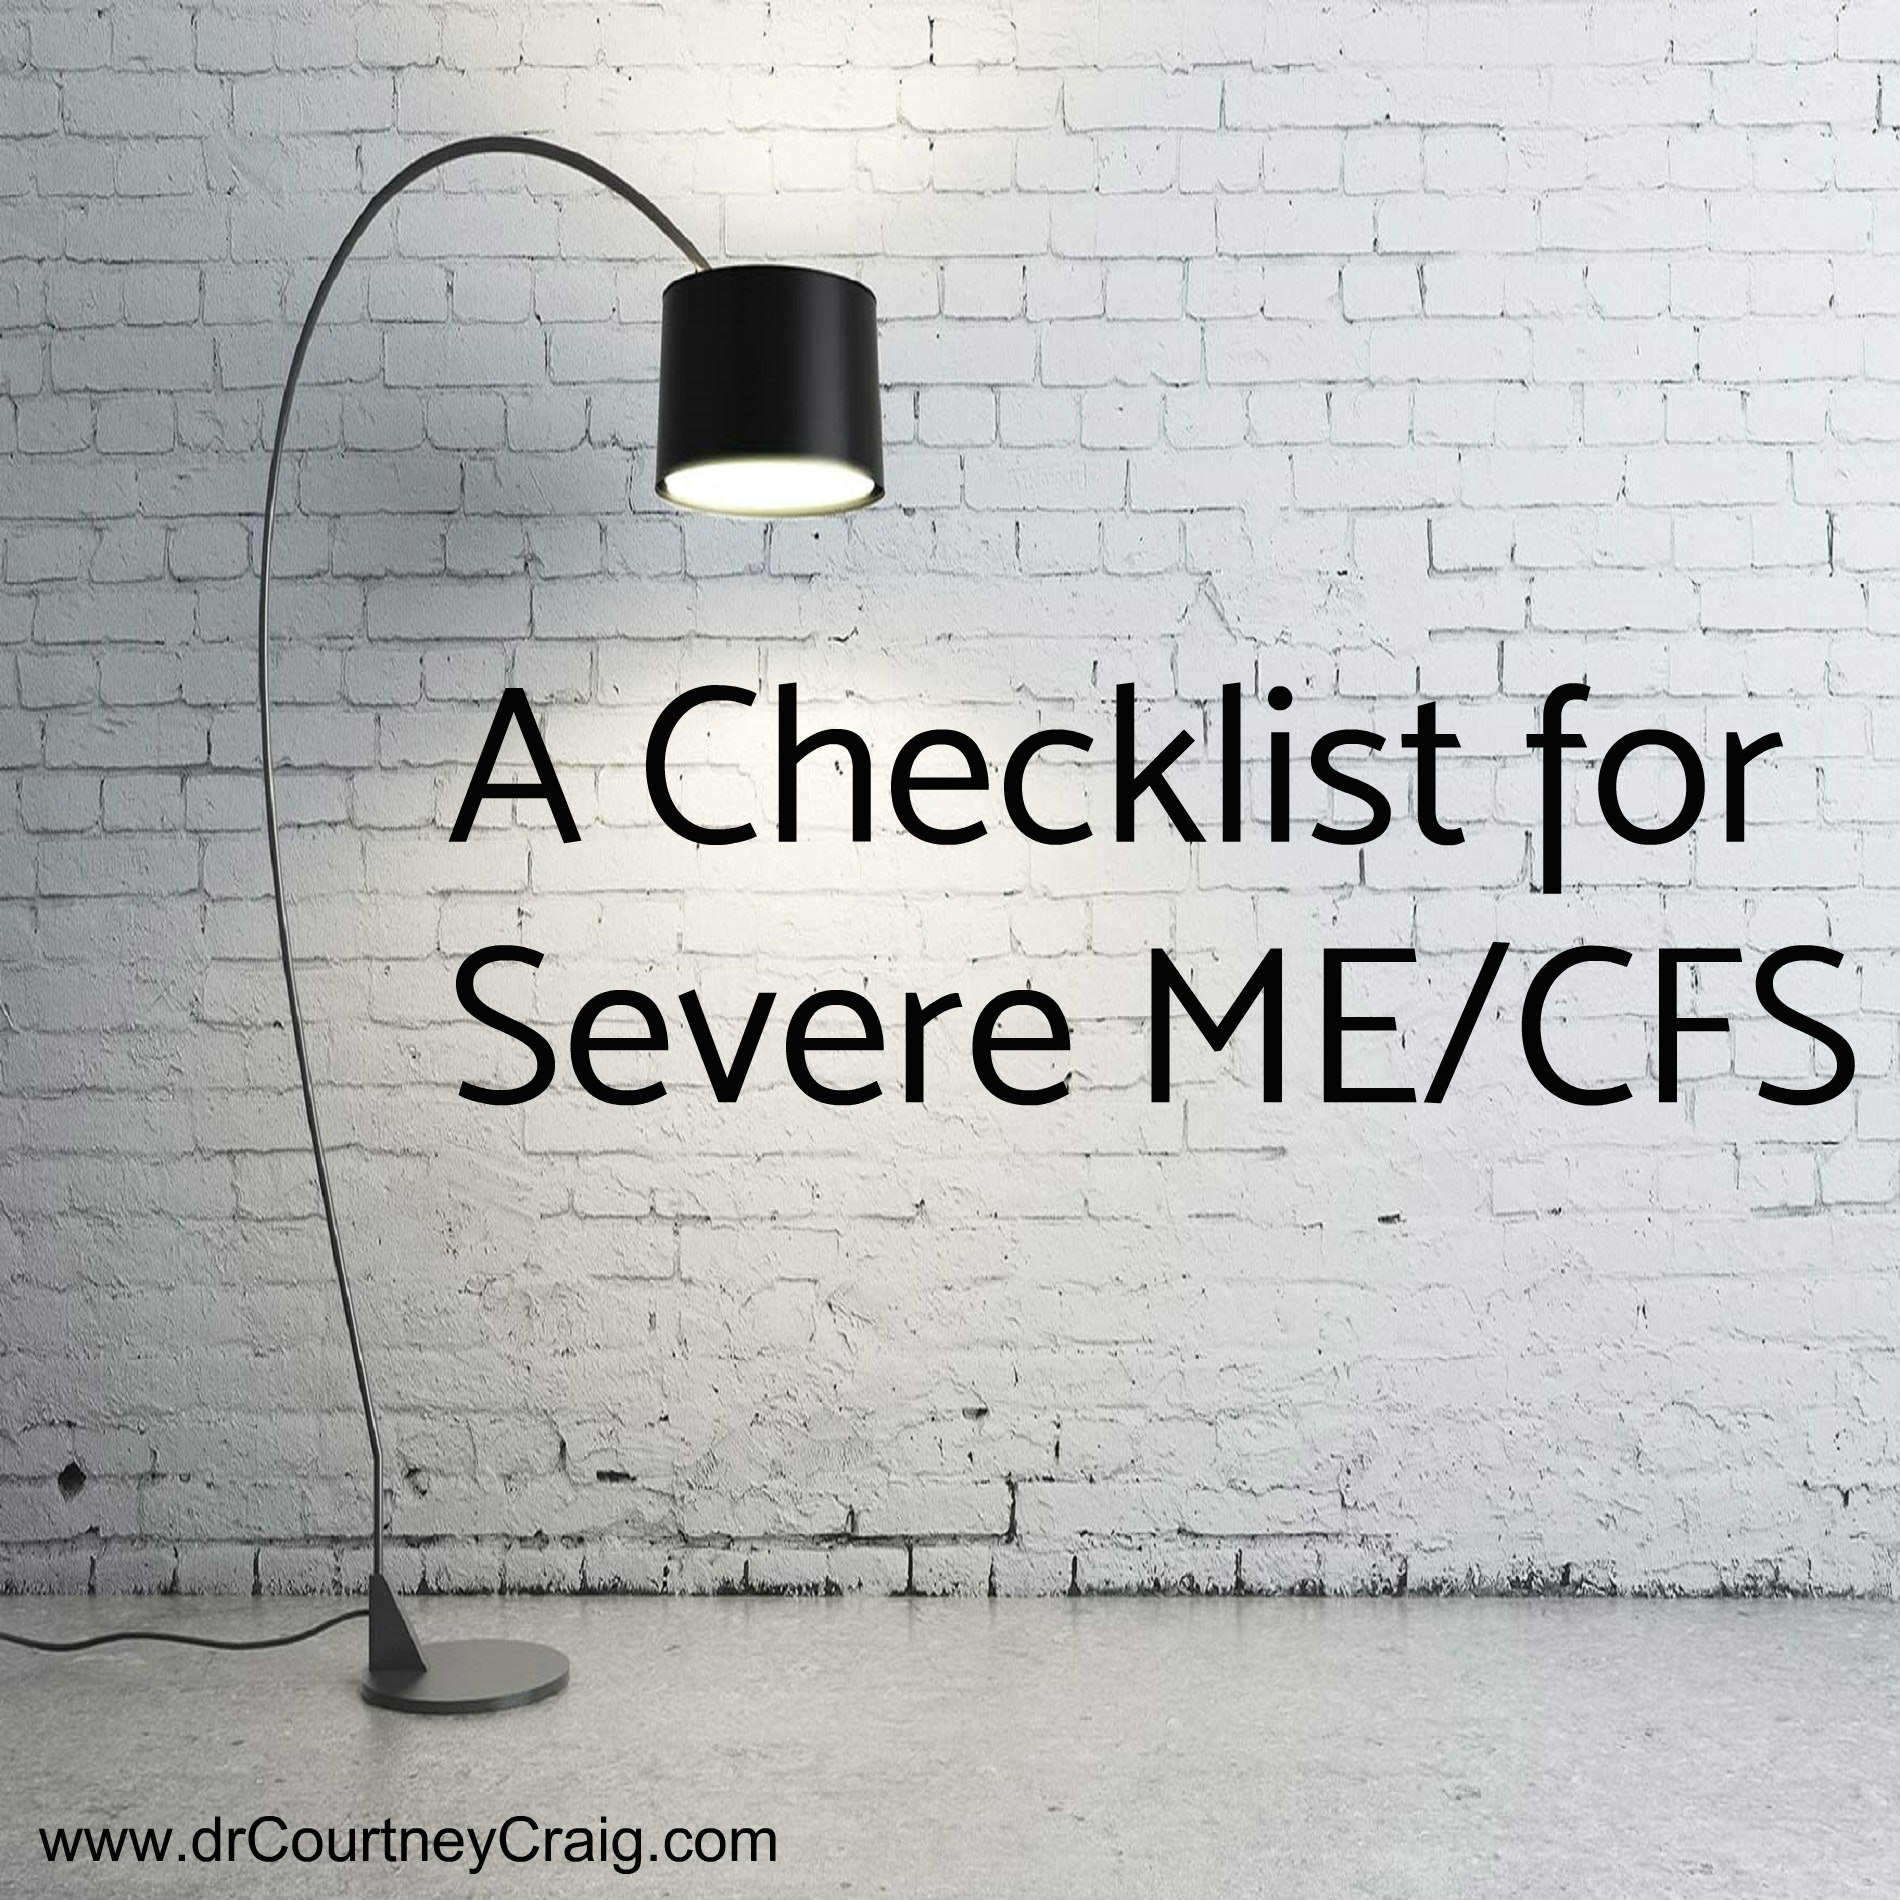 Patients with severe ME/CFS have special nutritional needs as well as common sense health requirements due to chronic bed rest and immobilization.